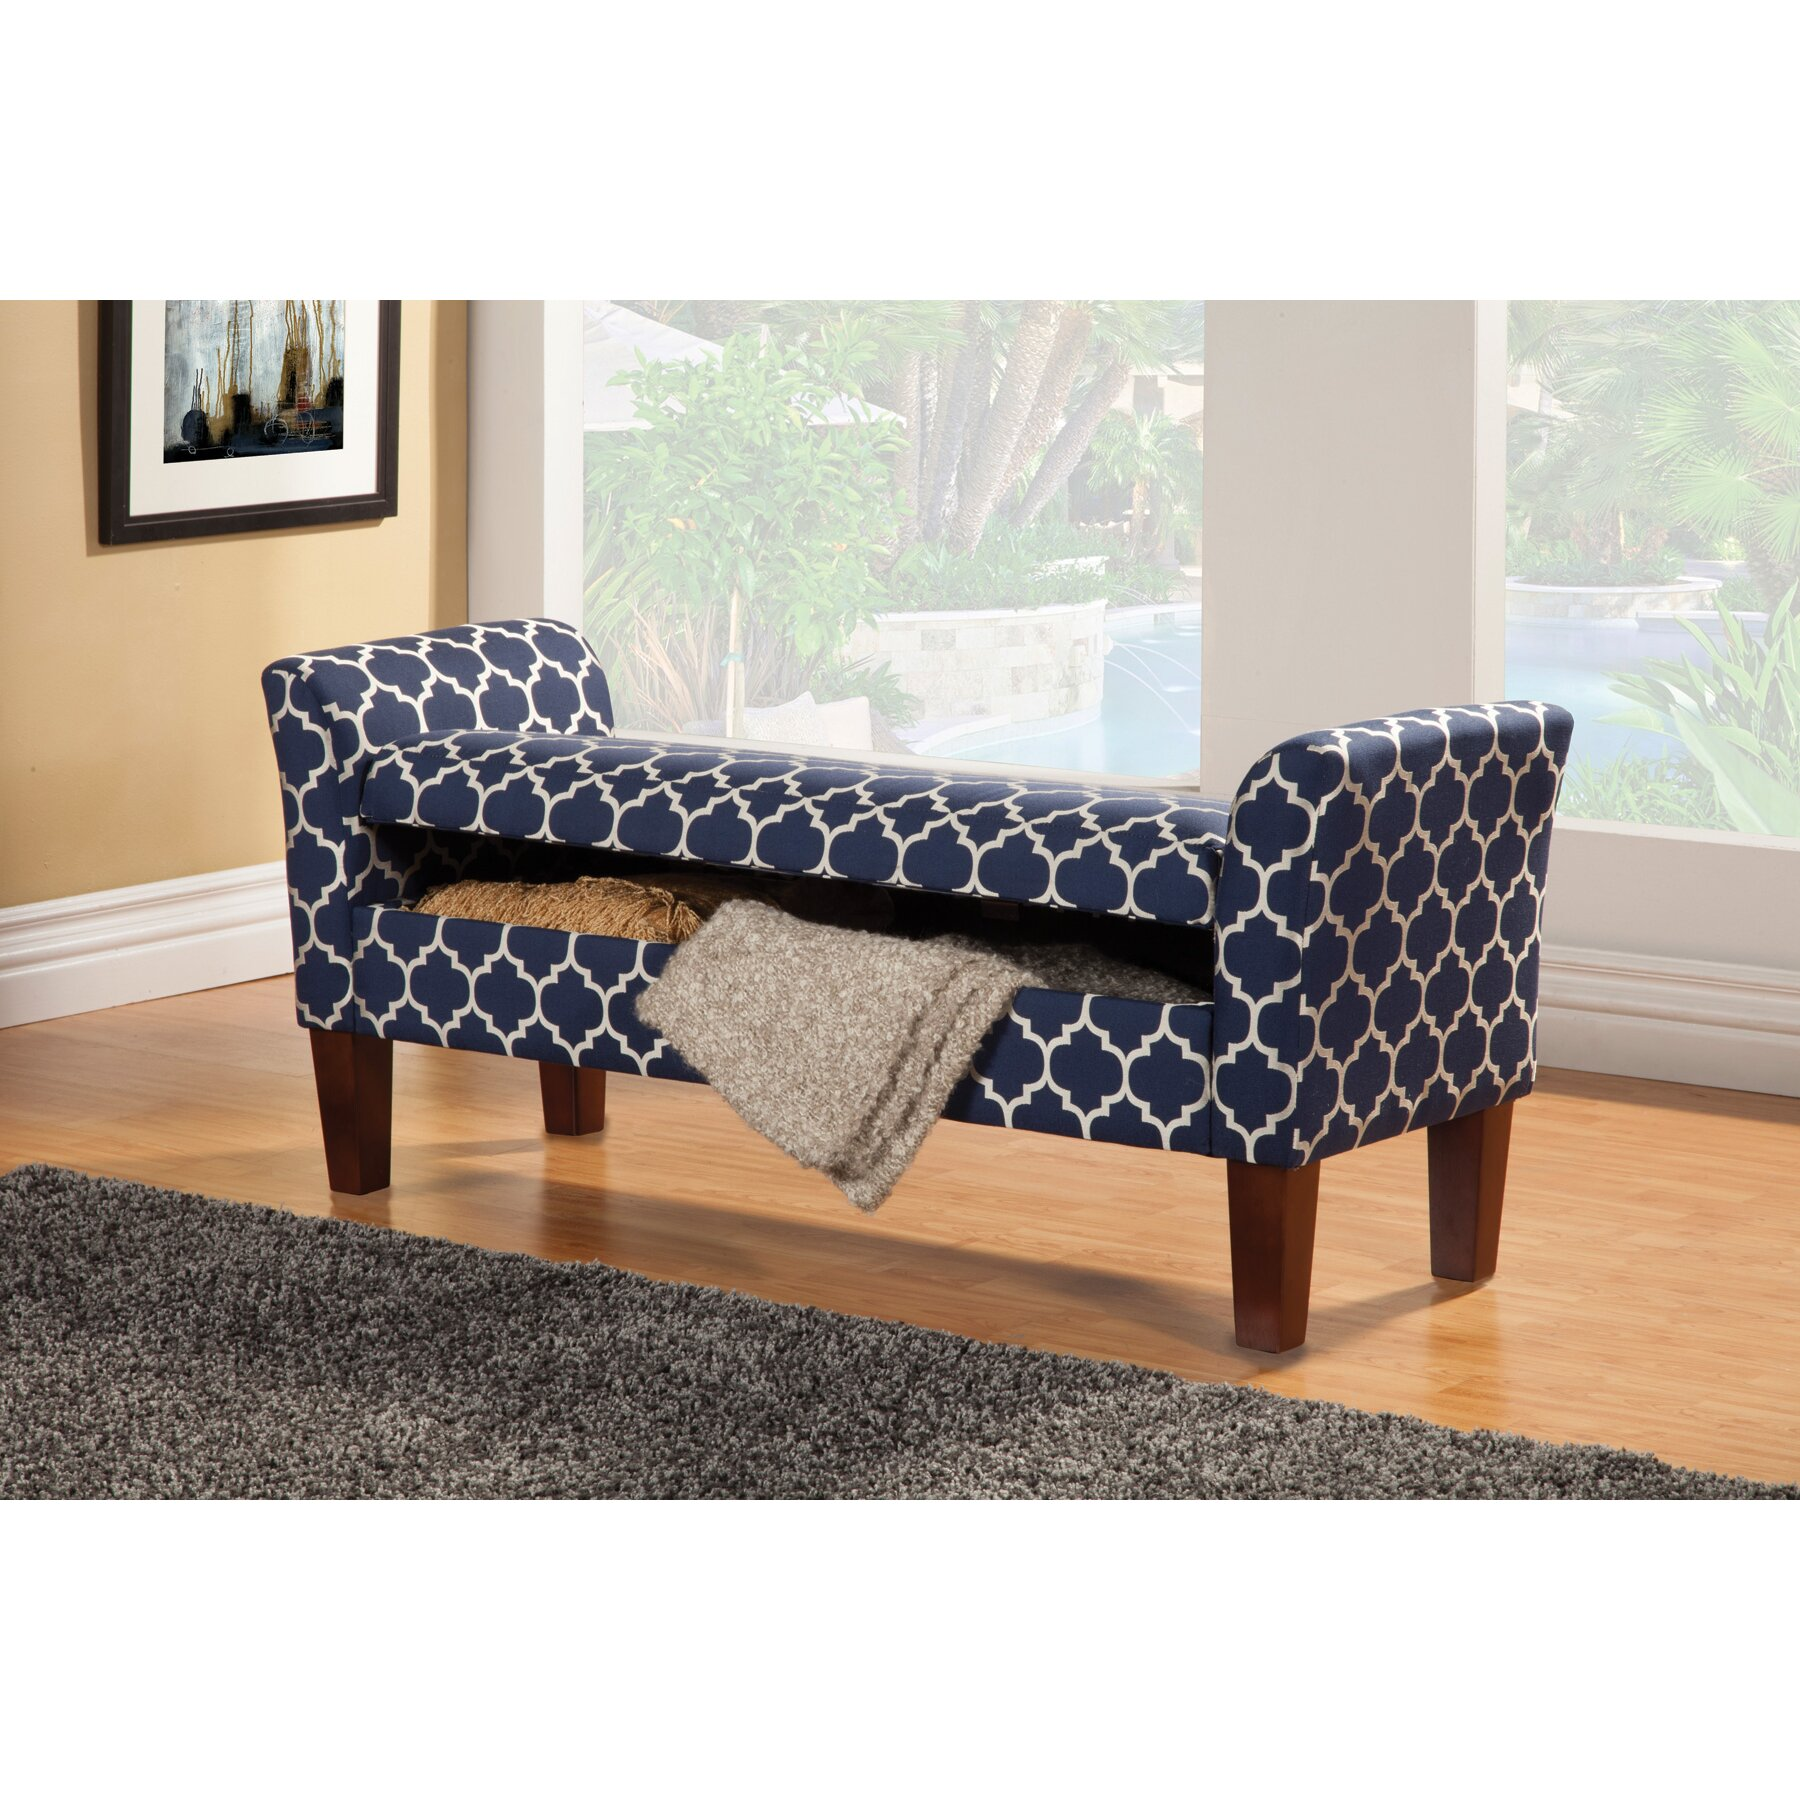 Wildon Home Upholstered Storage Bedroom Bench